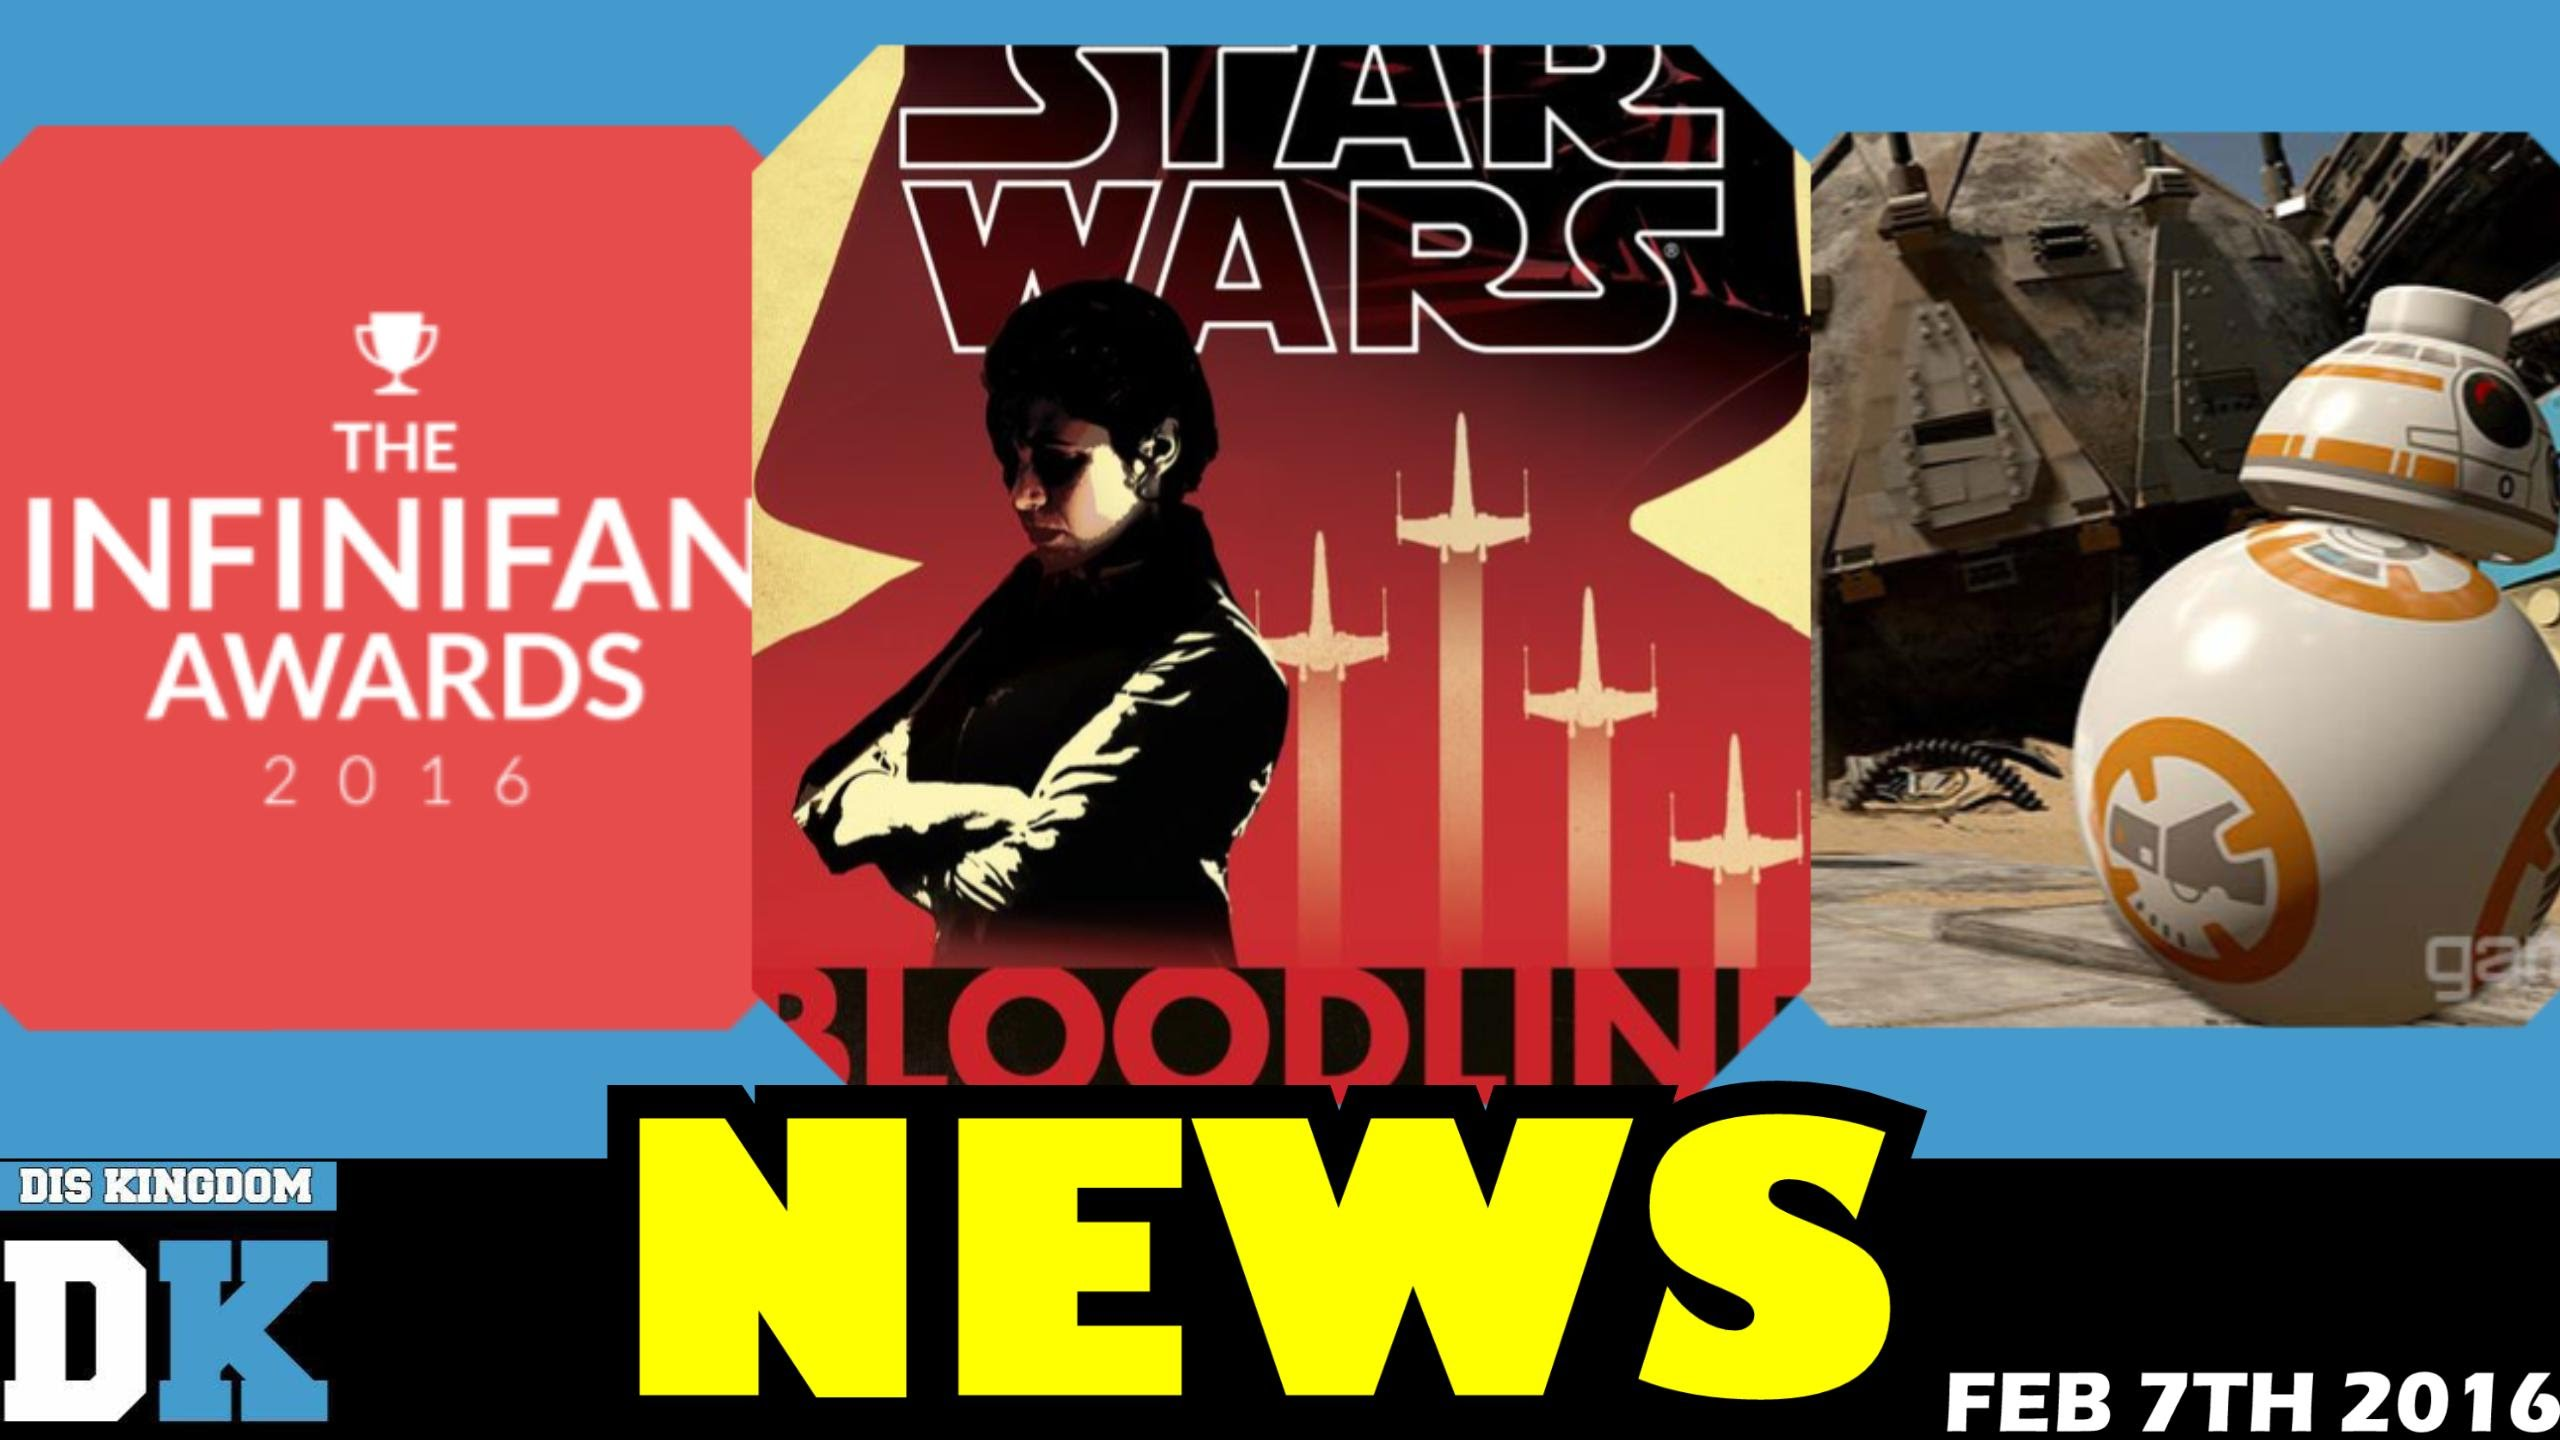 Star Wars Bloodlines + LEGO Star Wars: The Force Awakens – DK Daily News